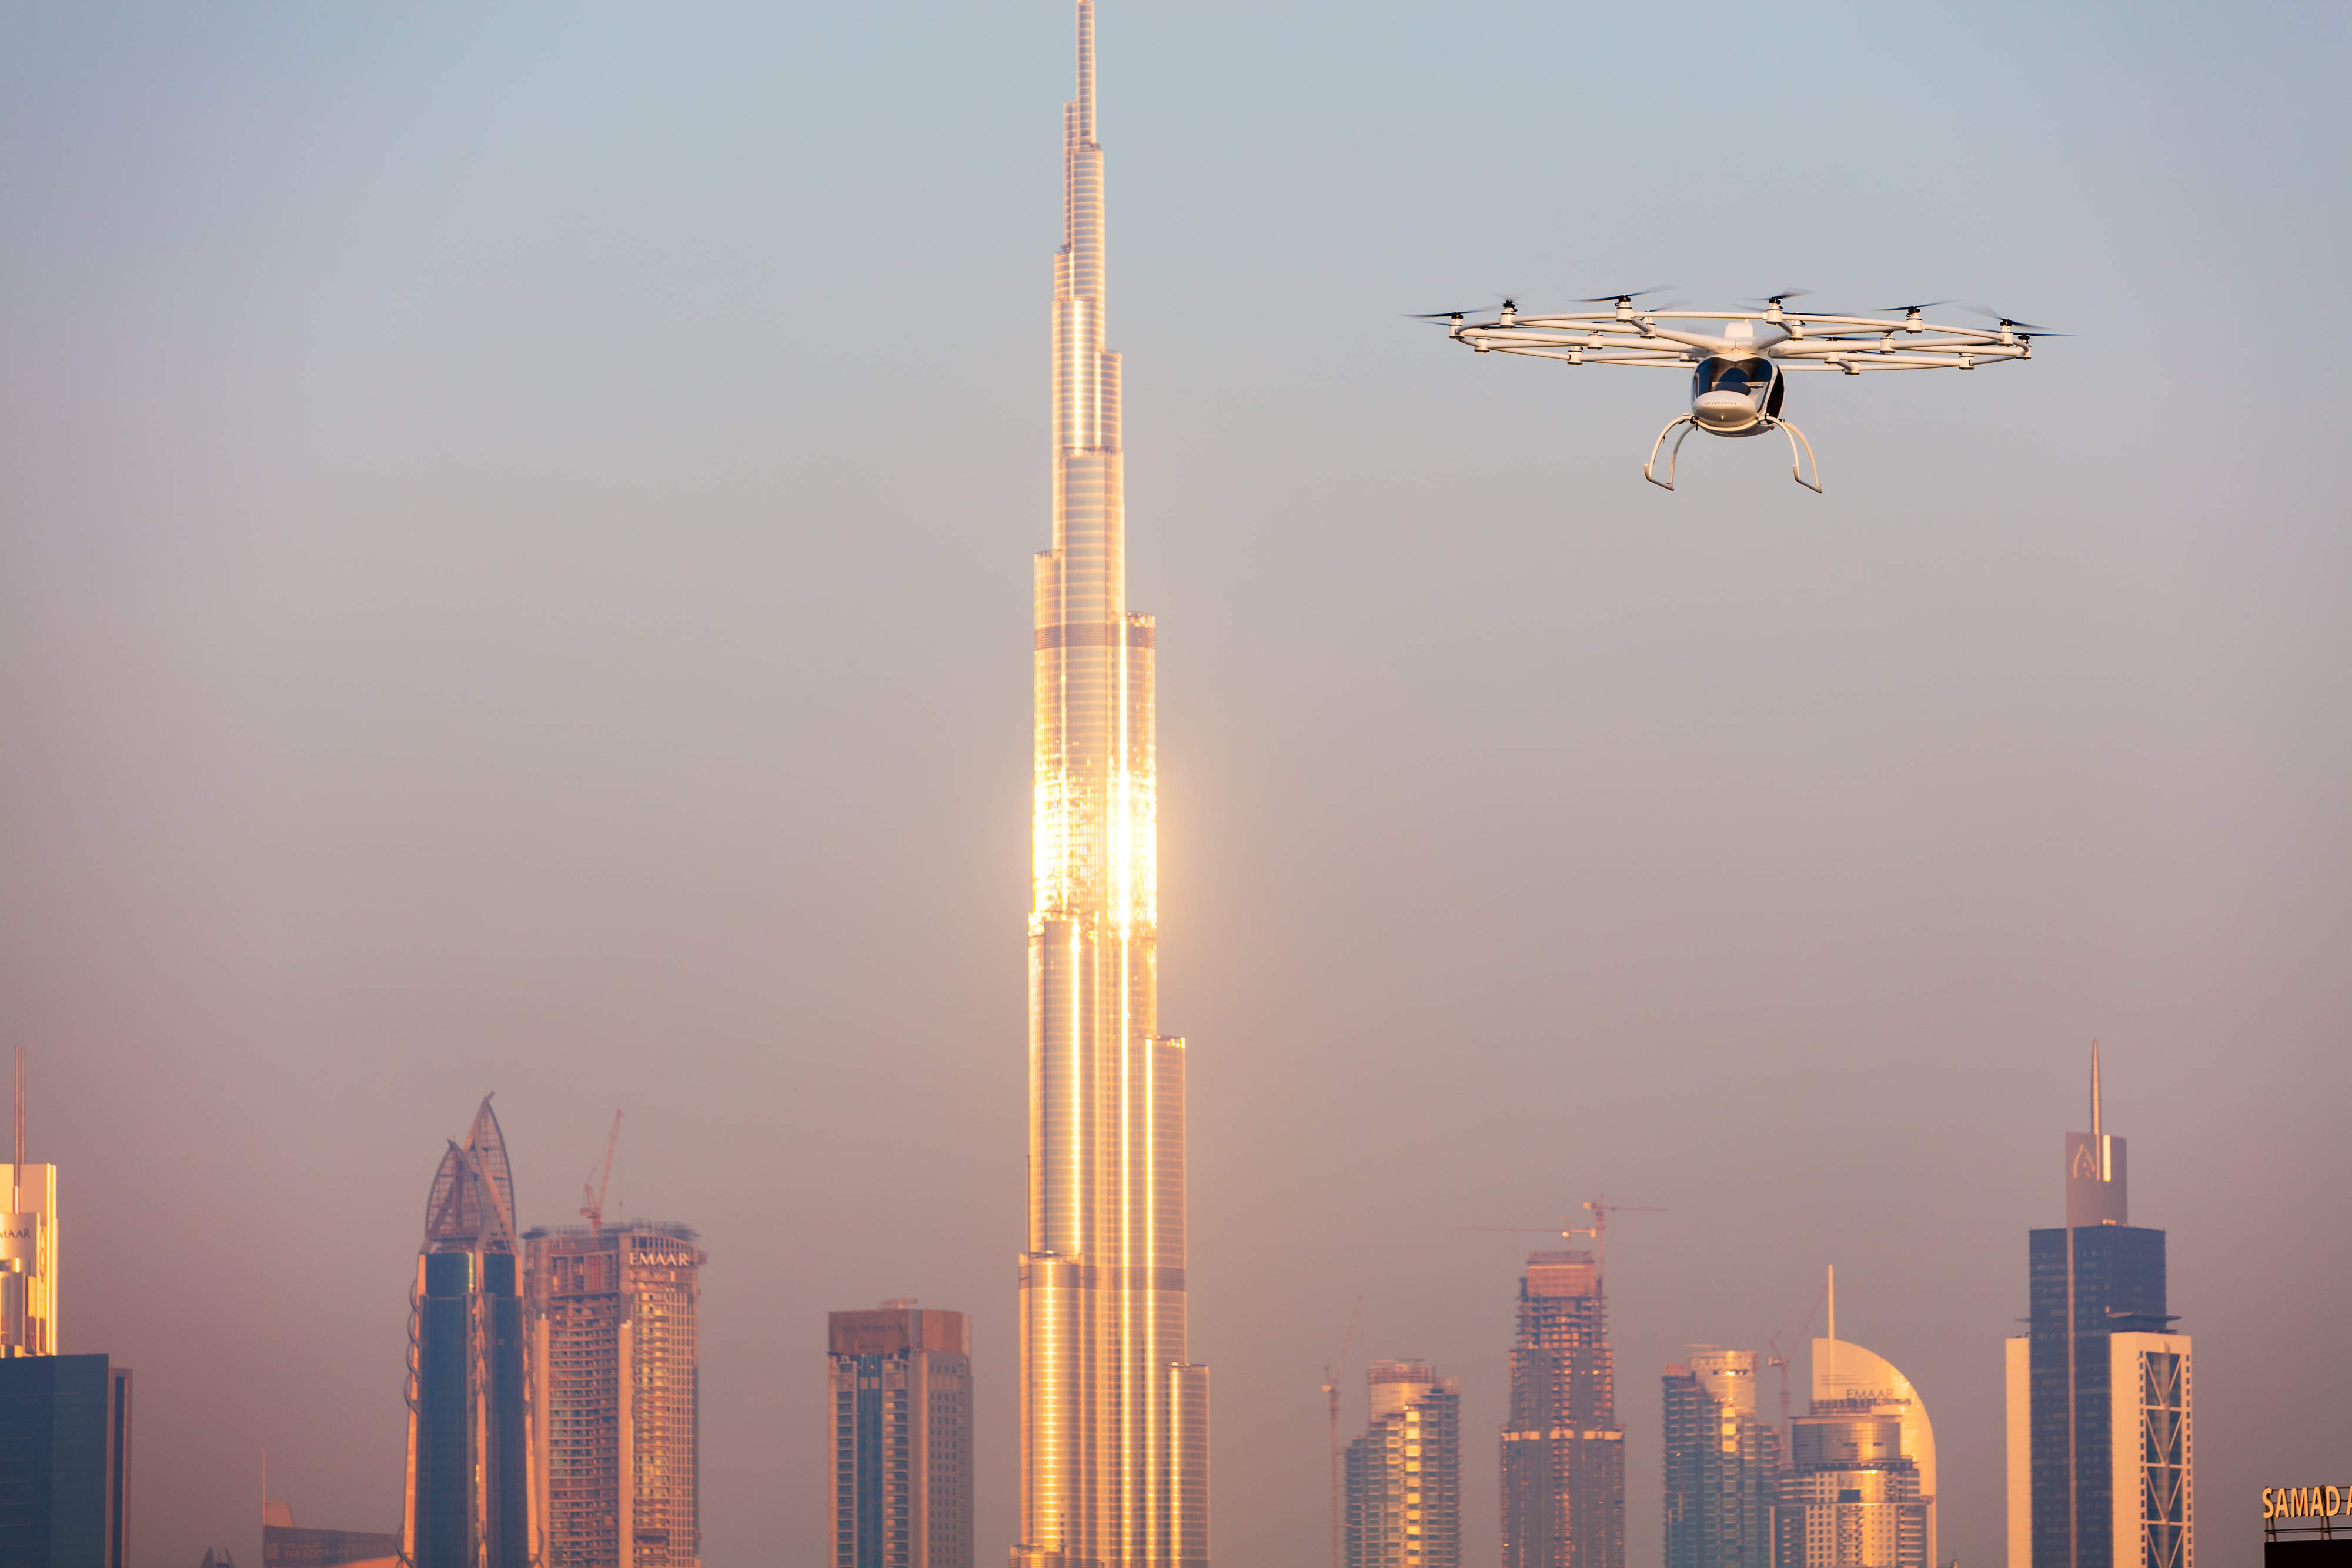 Dubai on track to become the first city with flying taxis in the next five years